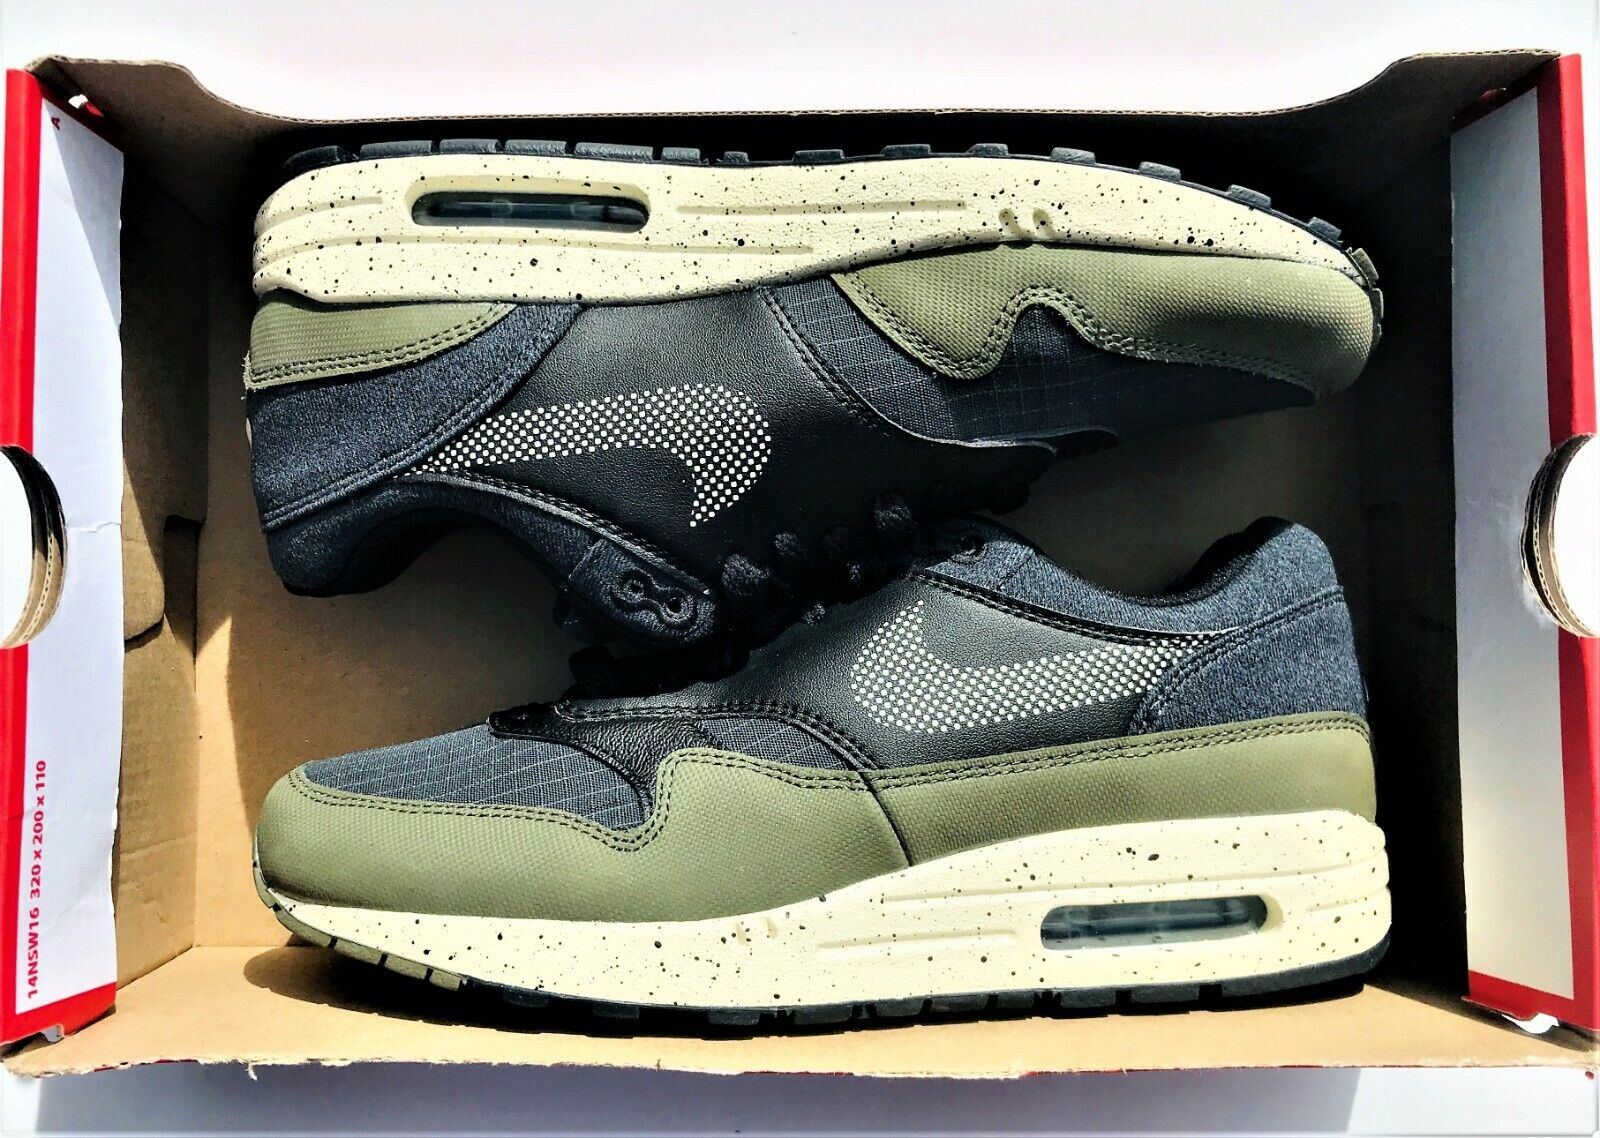 Nike Air Max 1 SE Medium Medium Medium Running shoes AO1021-200 Olive Cream Black Men's Sz 7.5 fc64c7